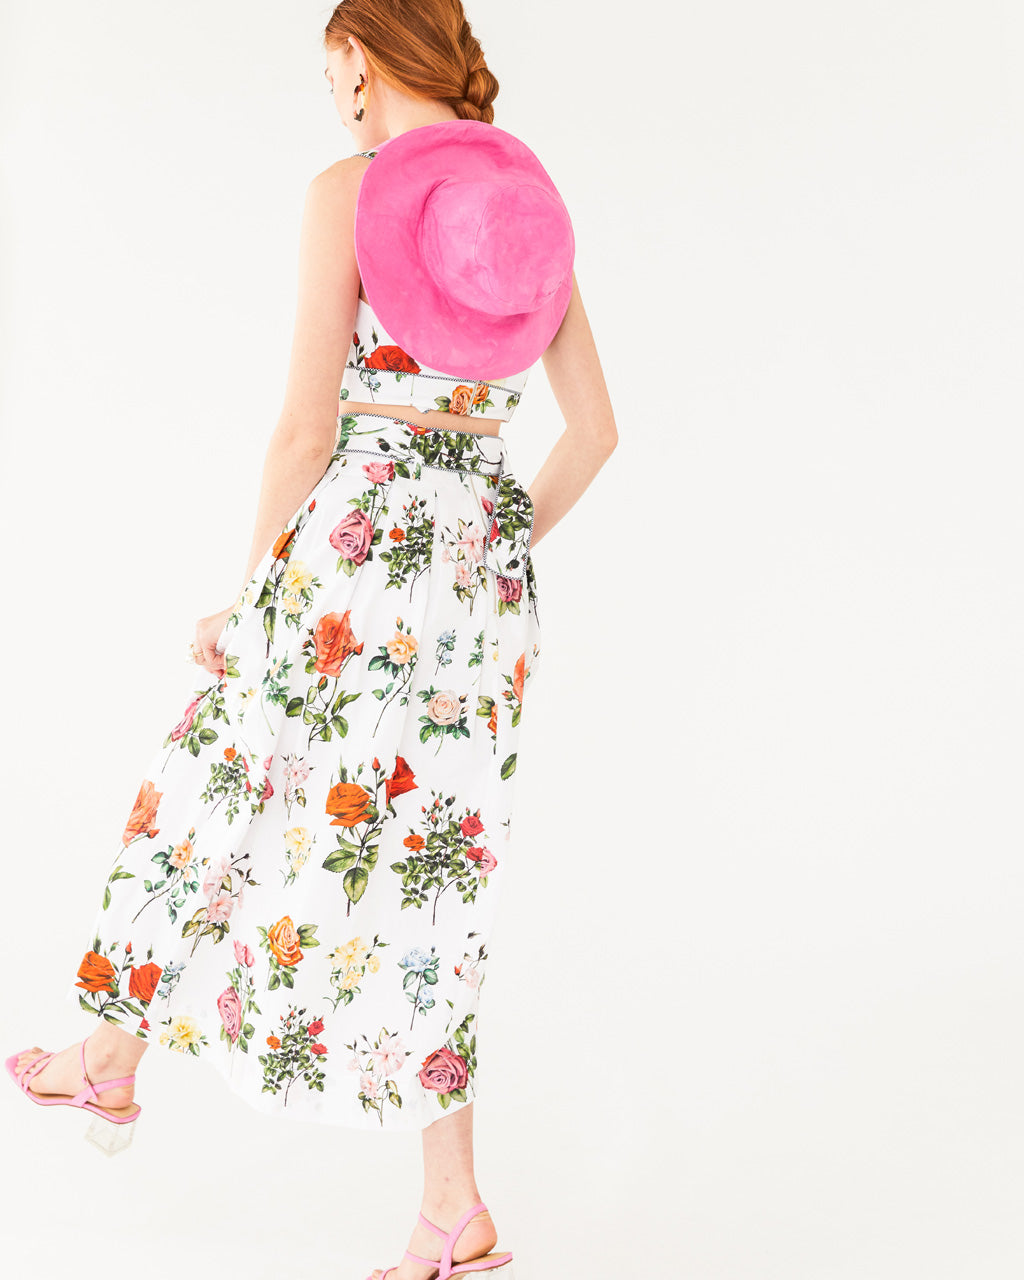 white midi skirt with an all over floral pattern paired with matching tank and bright pink hat shown on model